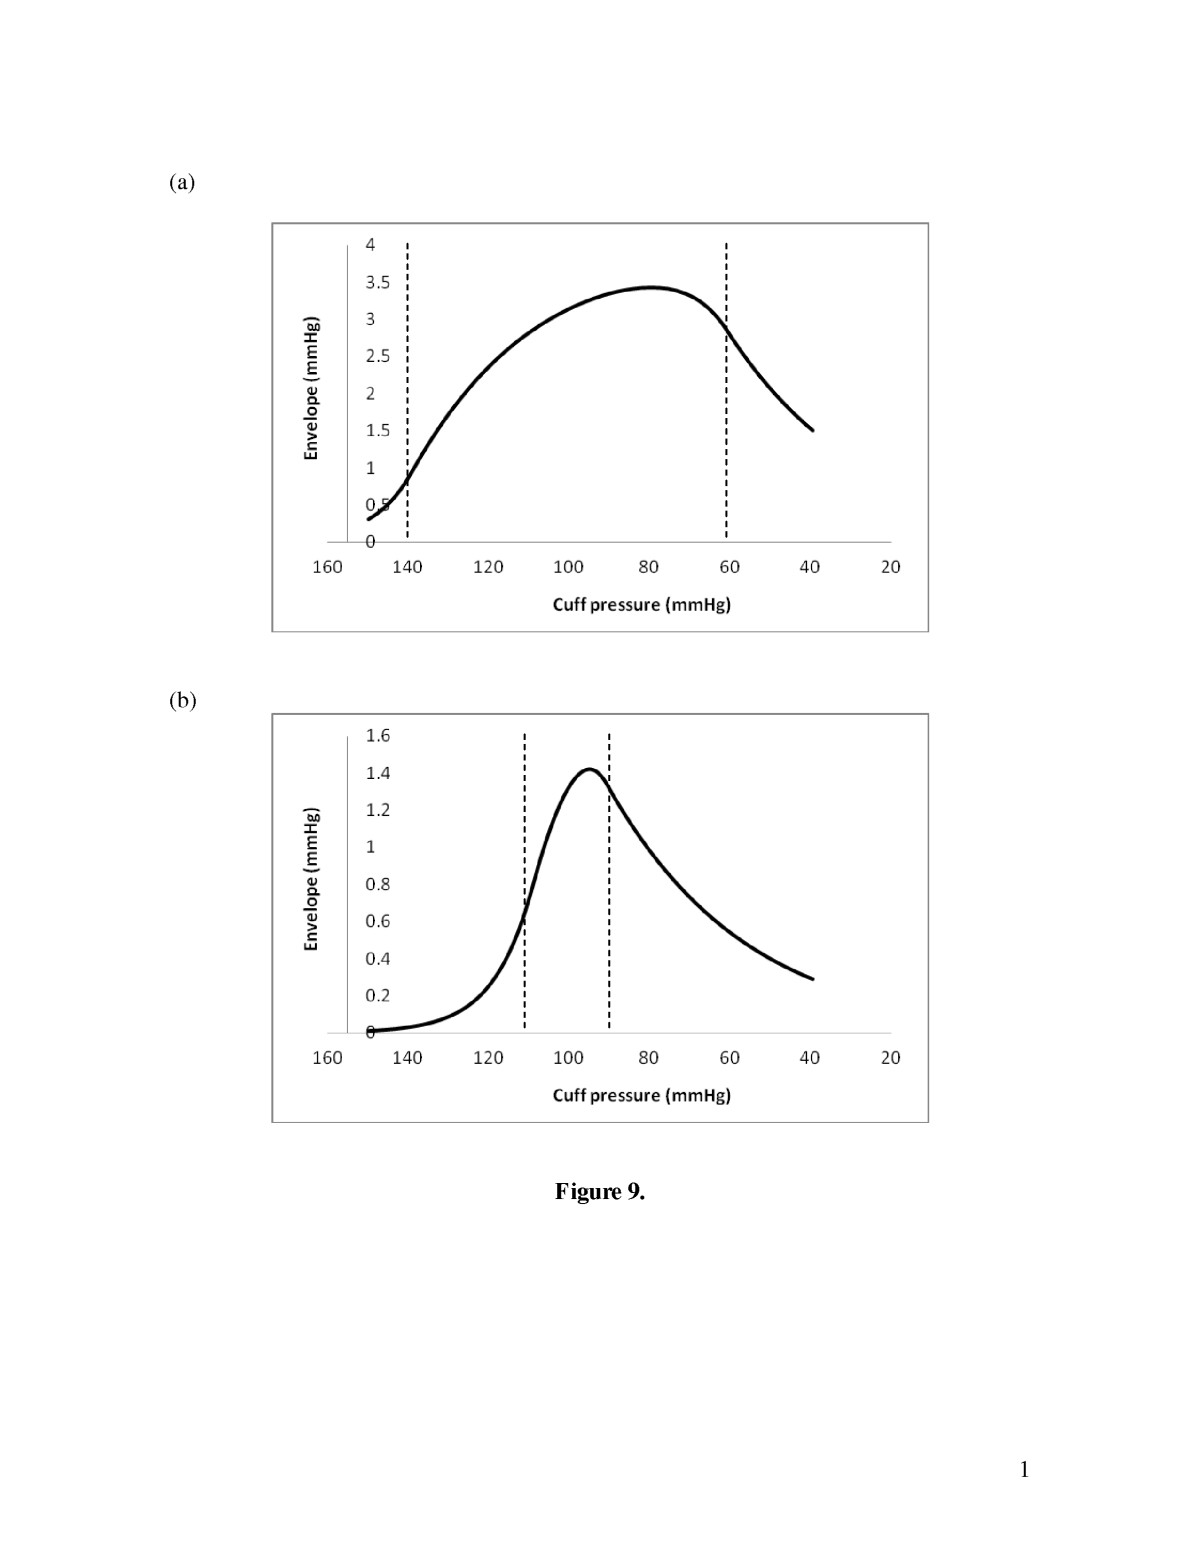 https://static-content.springer.com/image/art%3A10.1186%2F1475-925X-11-56/MediaObjects/12938_2012_Article_601_Fig9_HTML.jpg